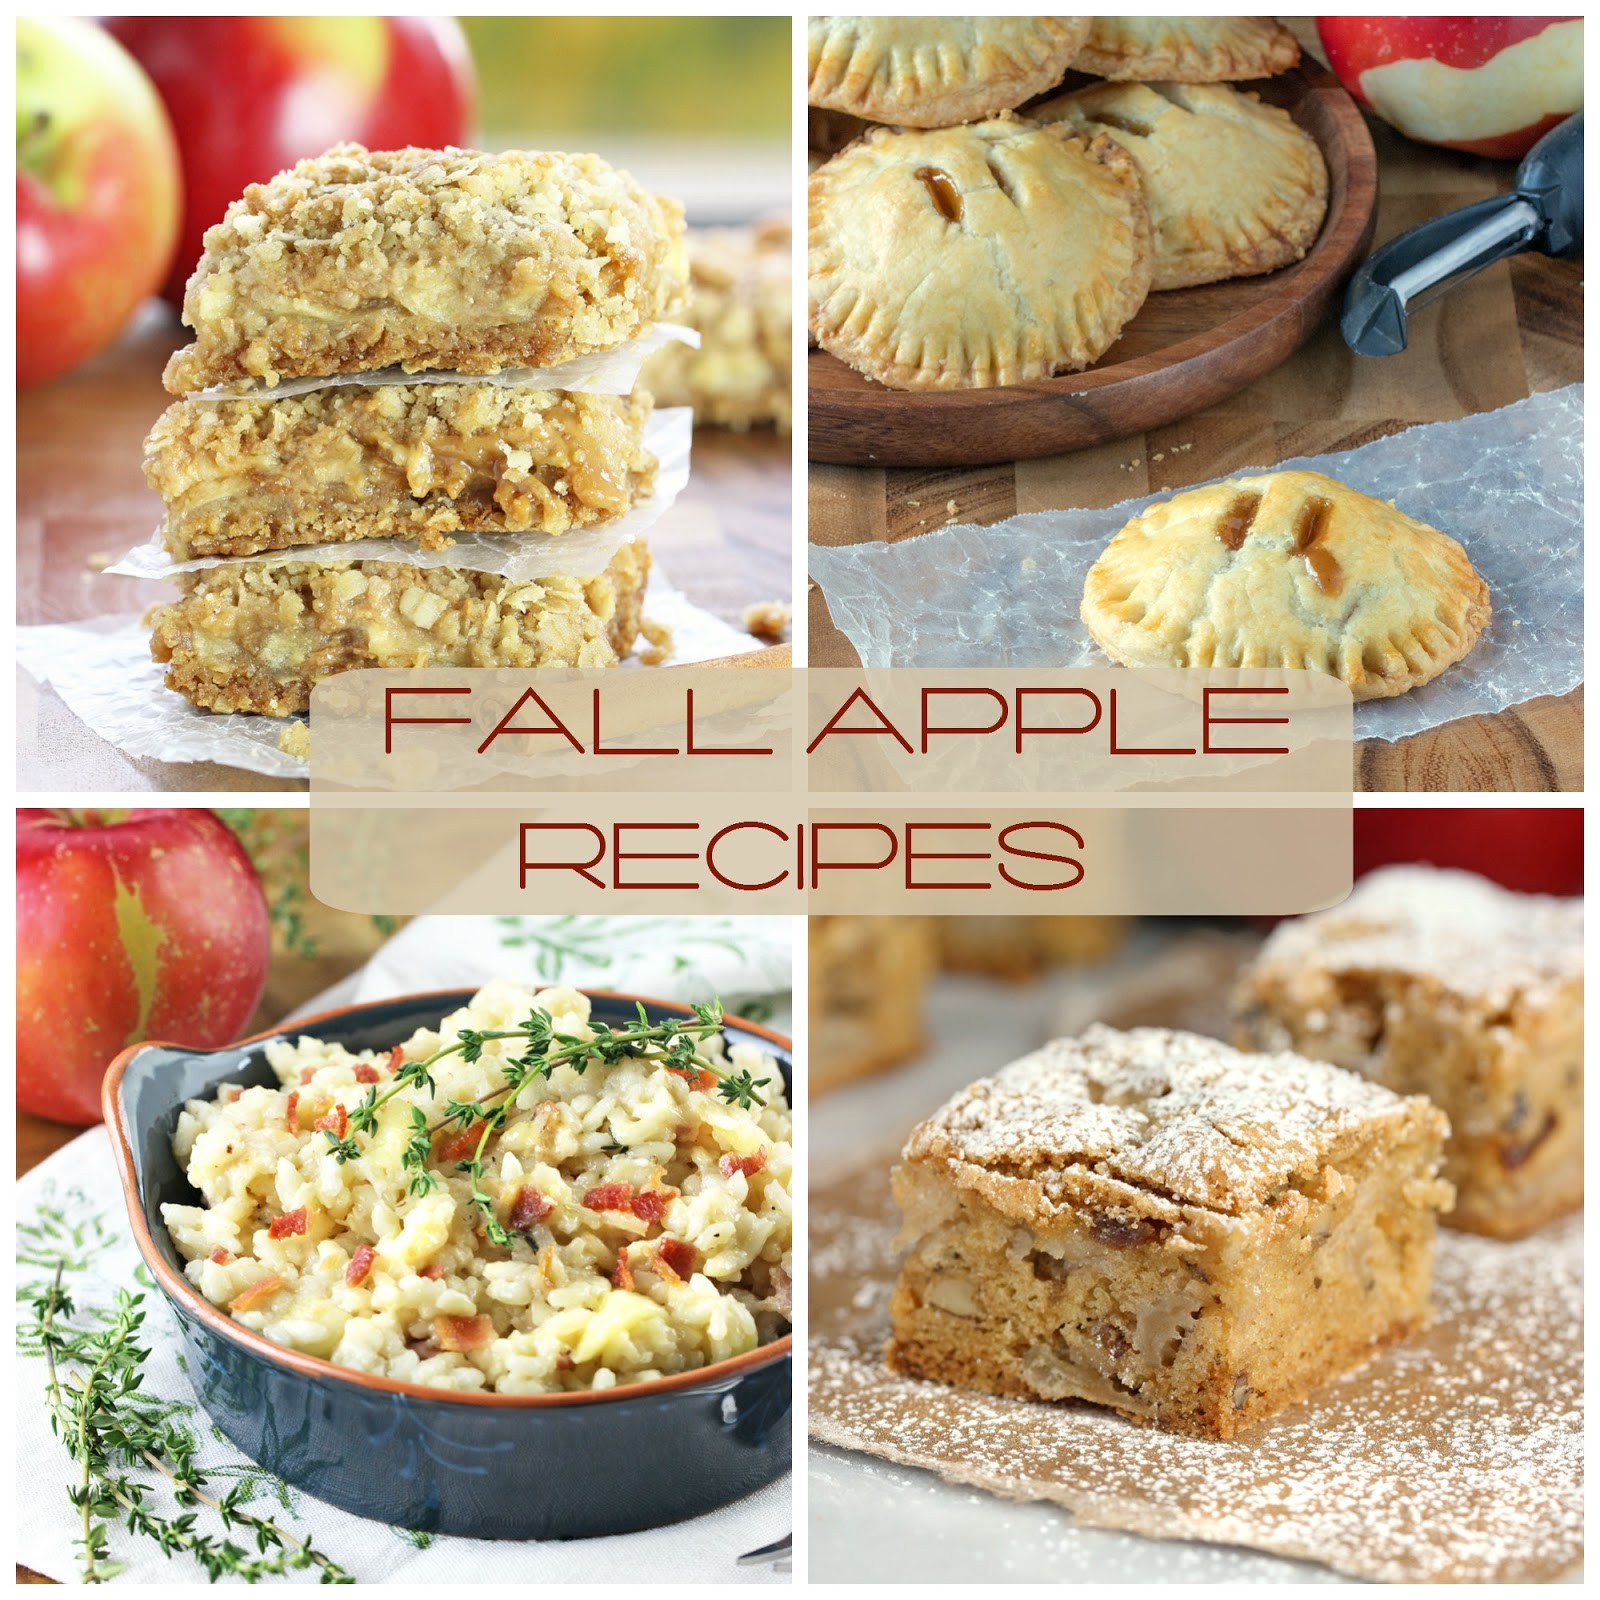 Fall Apple Recipes from Cooking on the Front Burner